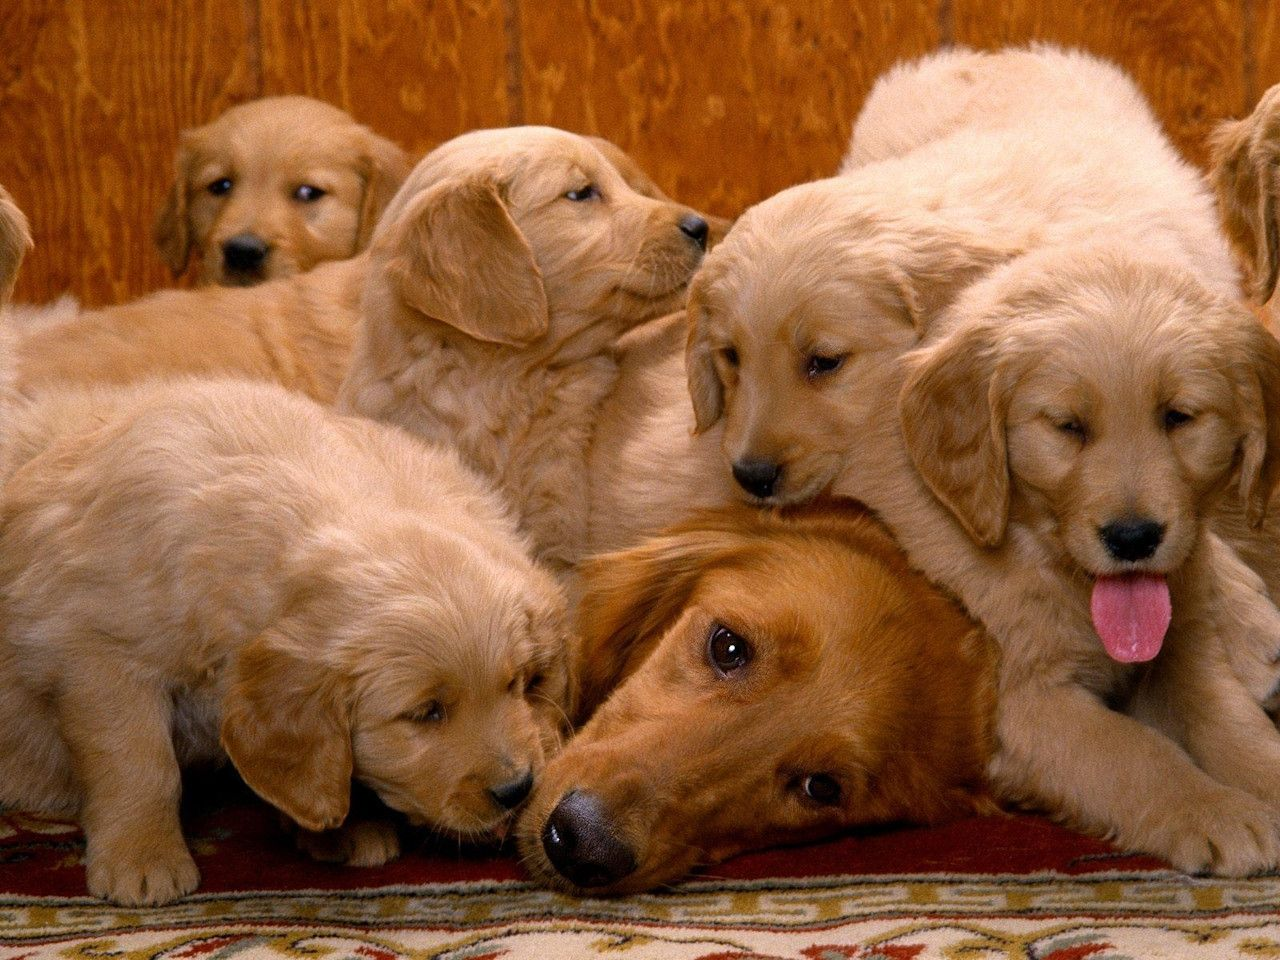 Momma Looks A Little Tired Cute Animals Dogs Cute Dogs